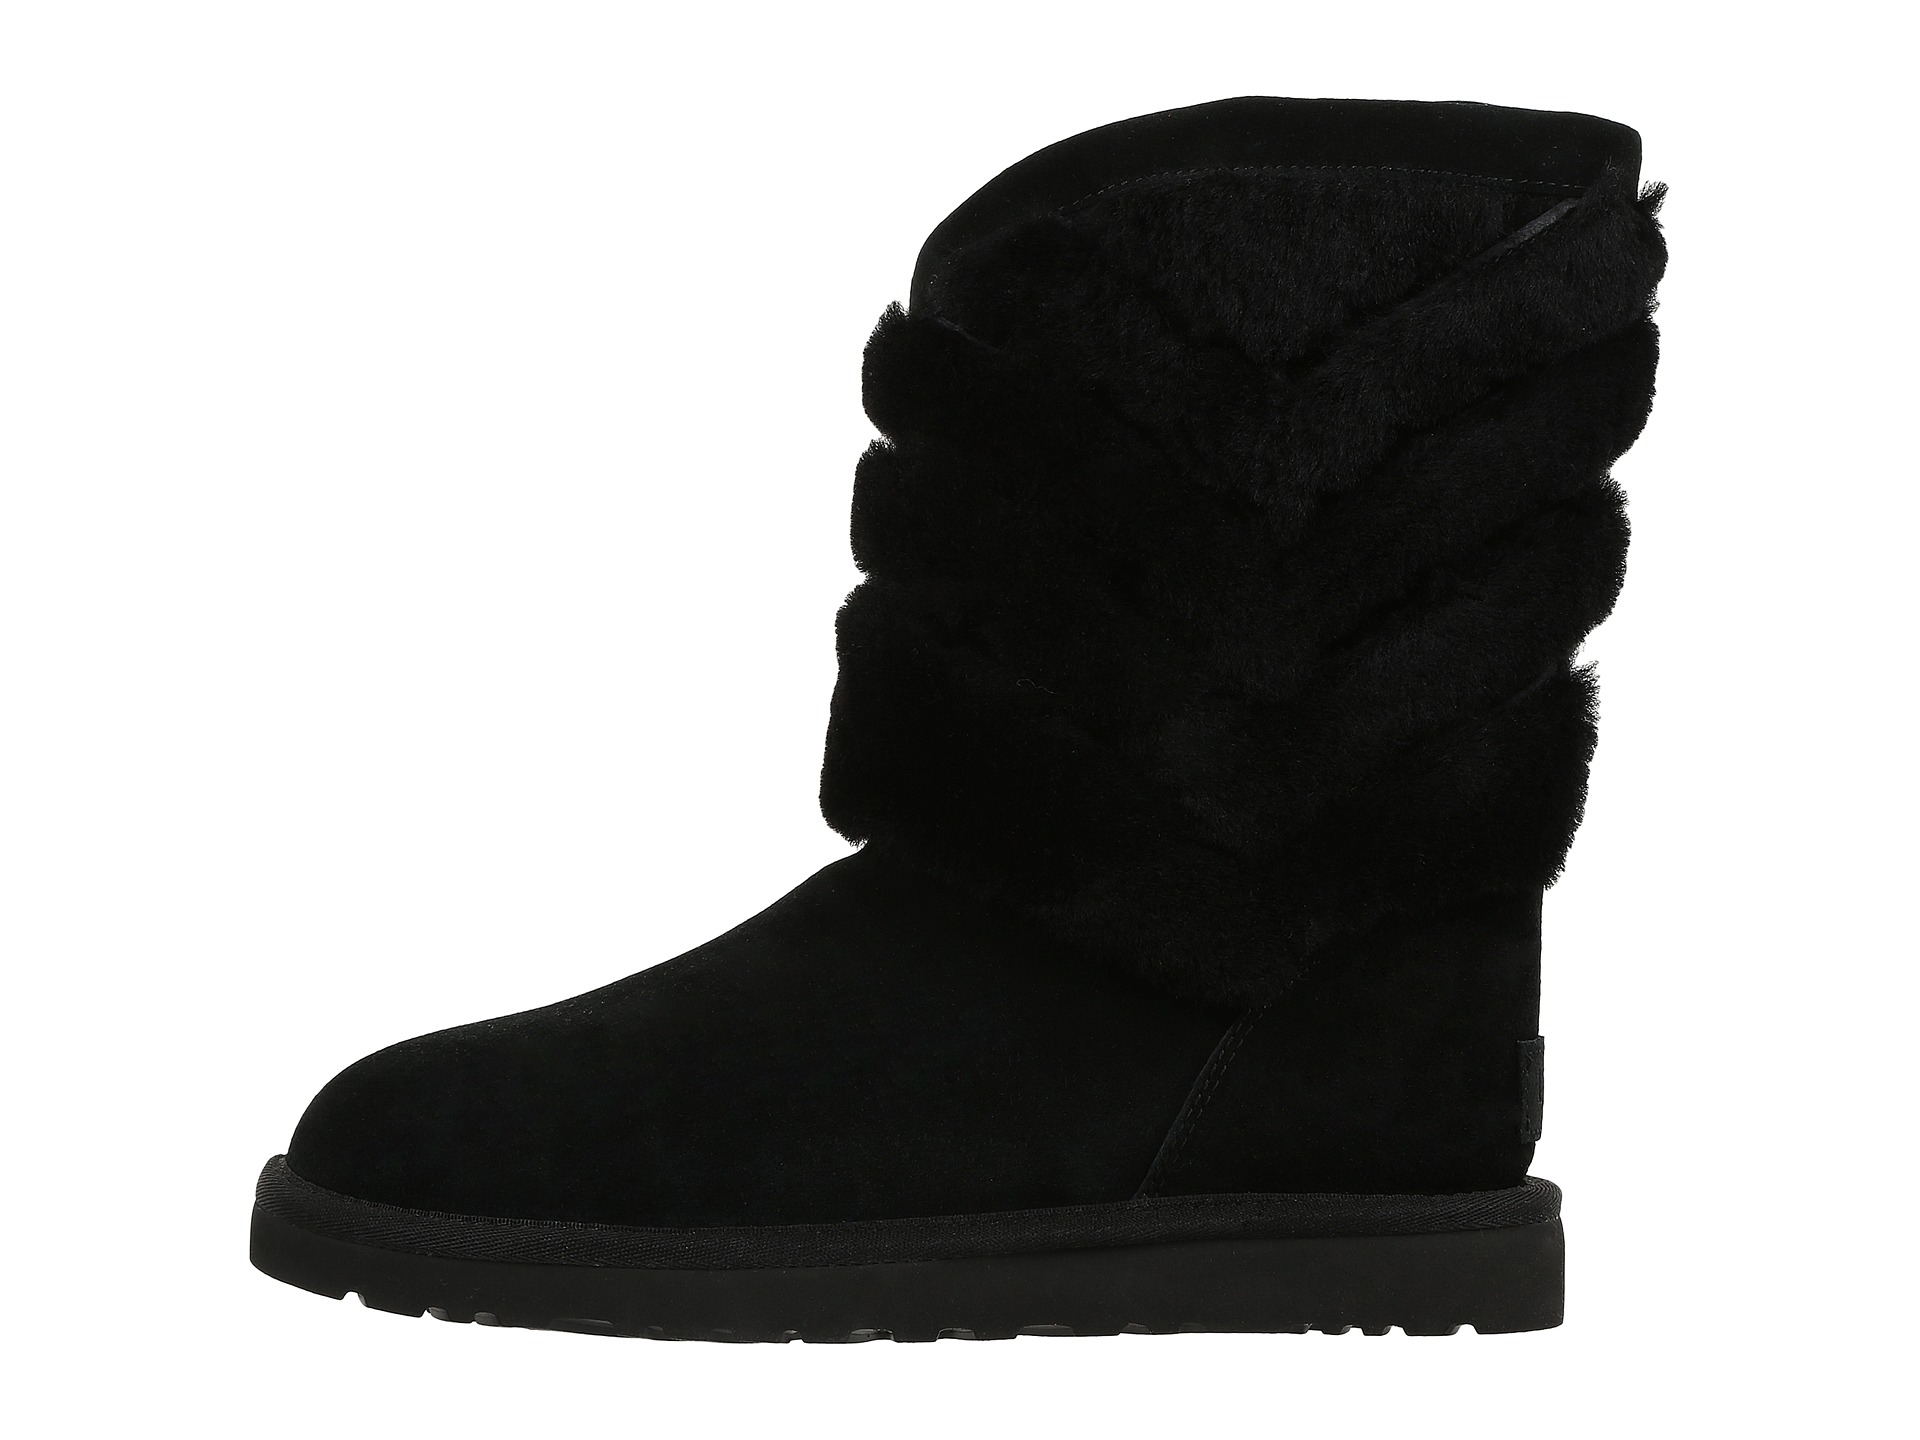 UGG outlet store michigan